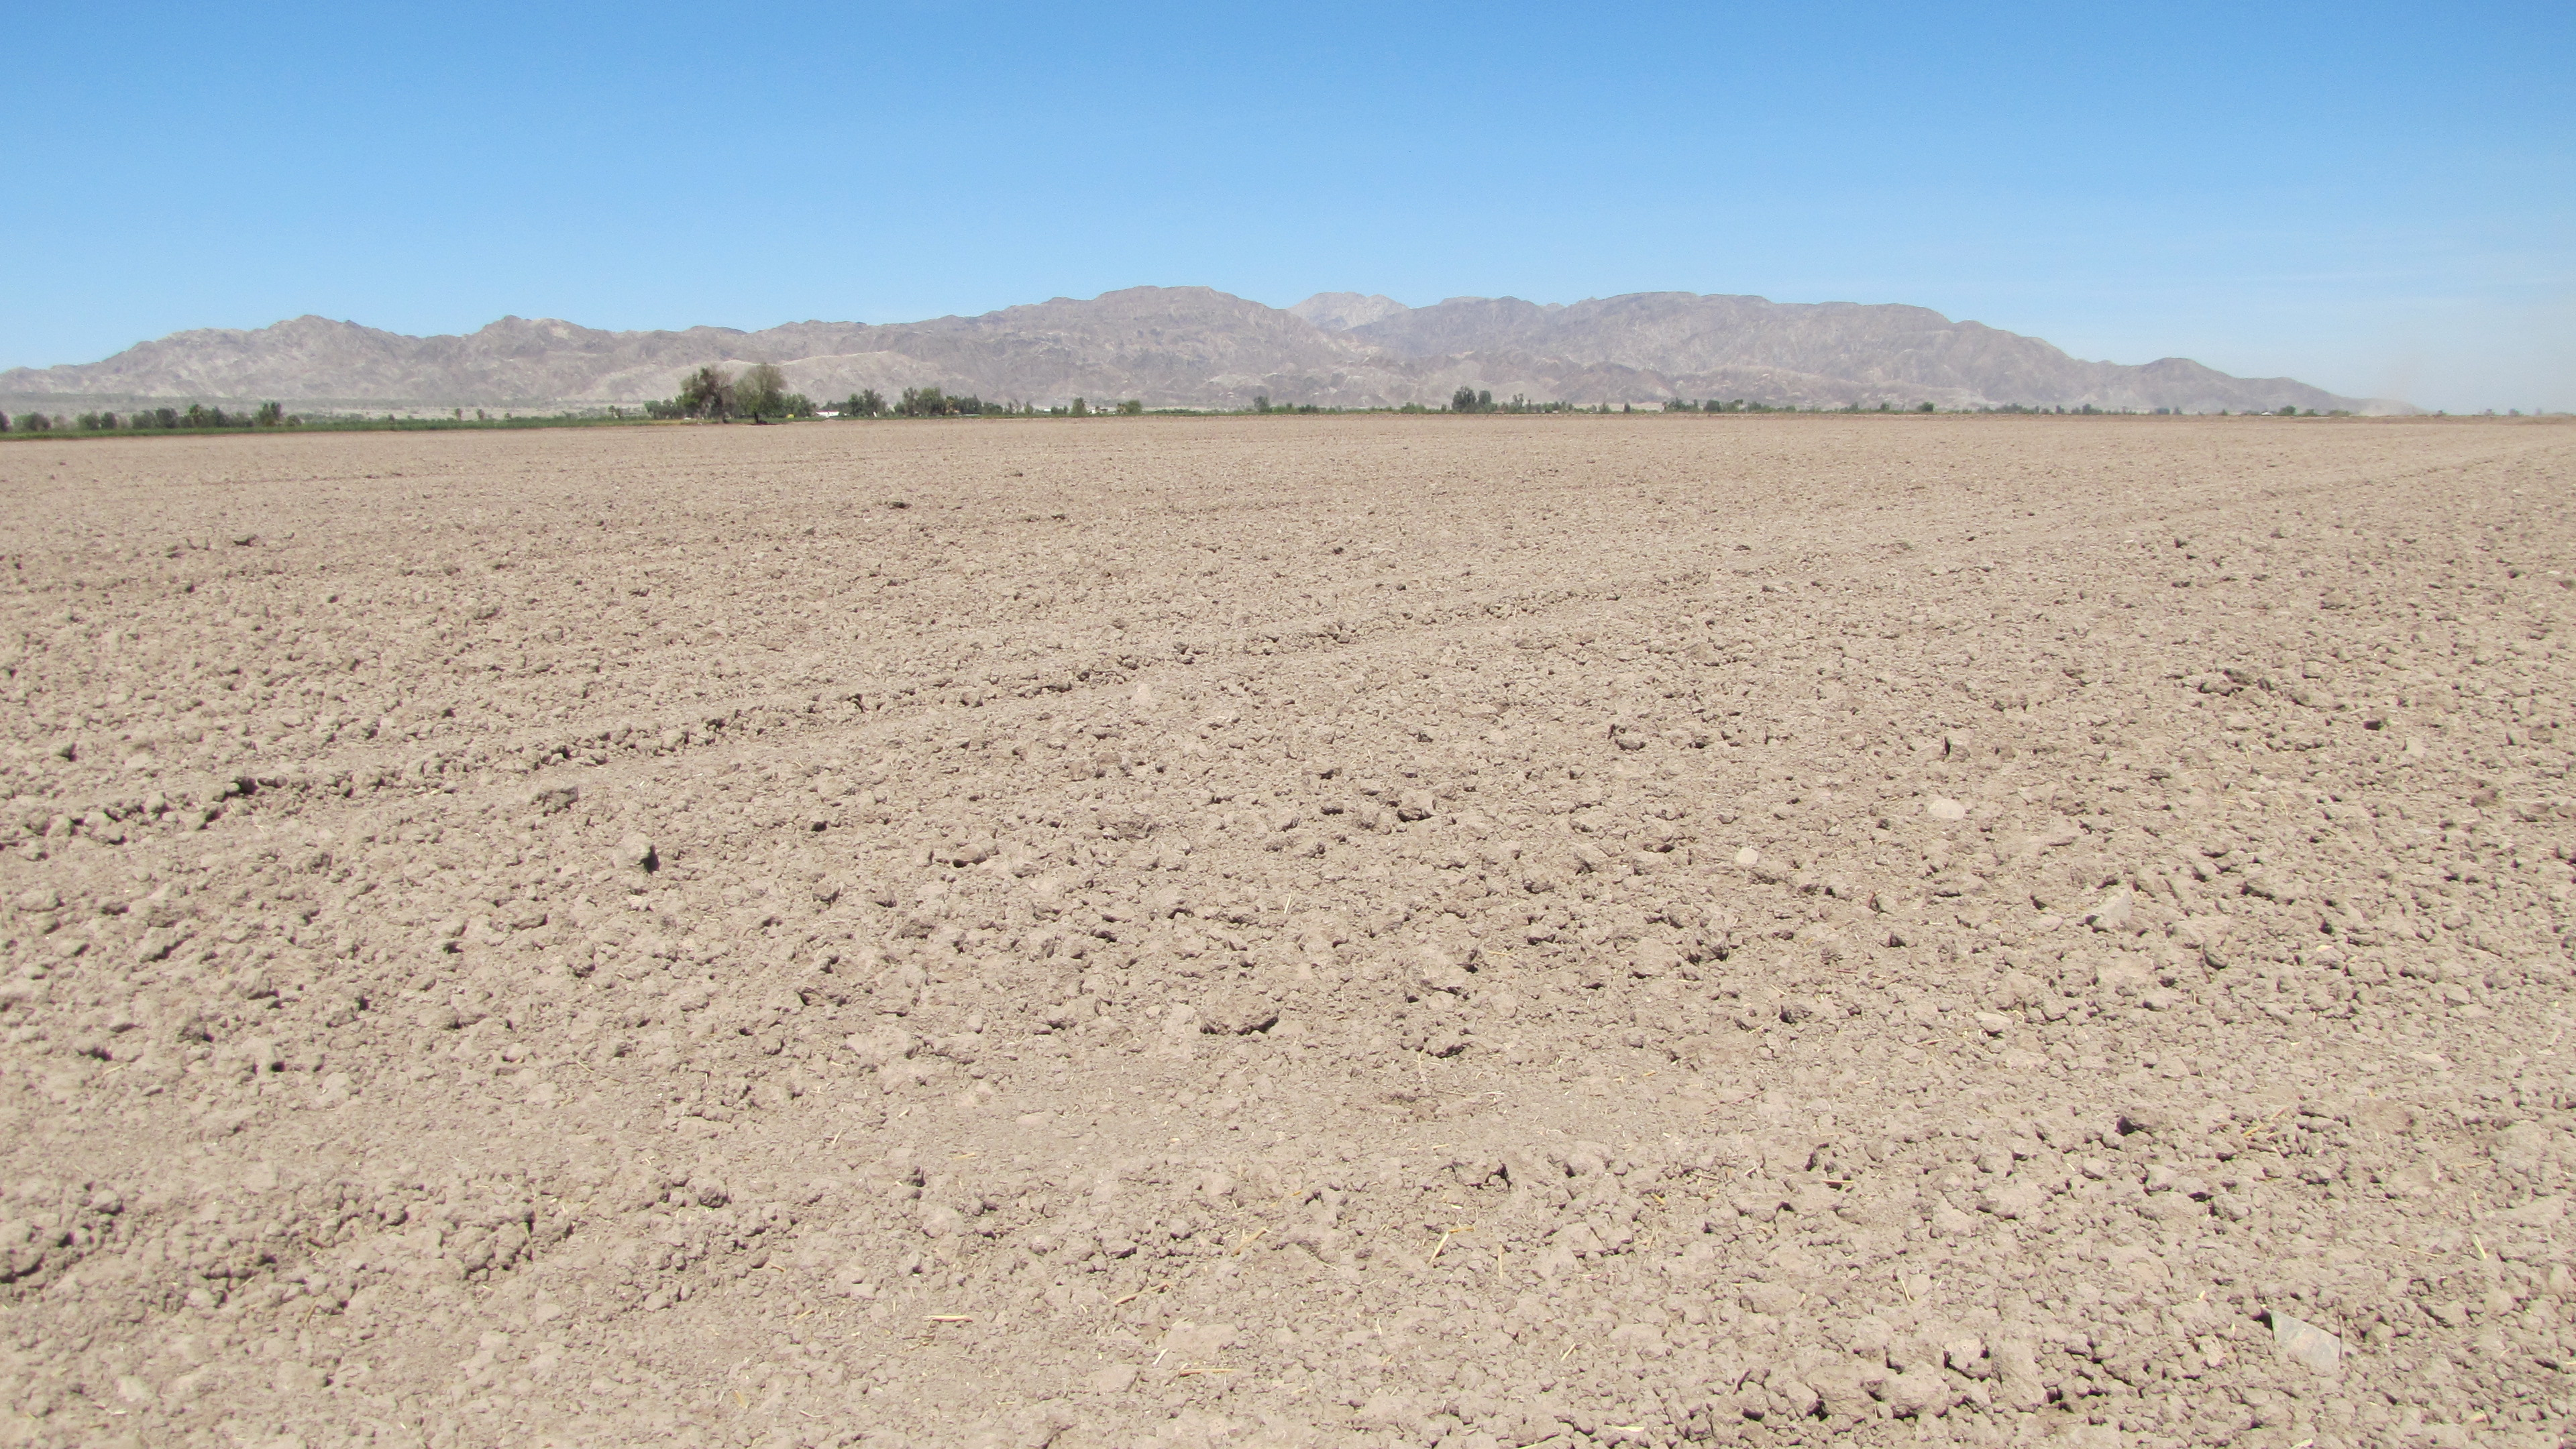 Water is the major problem for Mexicali farmers. The quake destroyed the valley's main irrigation canal, Nueva Delta. Government officials say it'll take three years to rebuild.